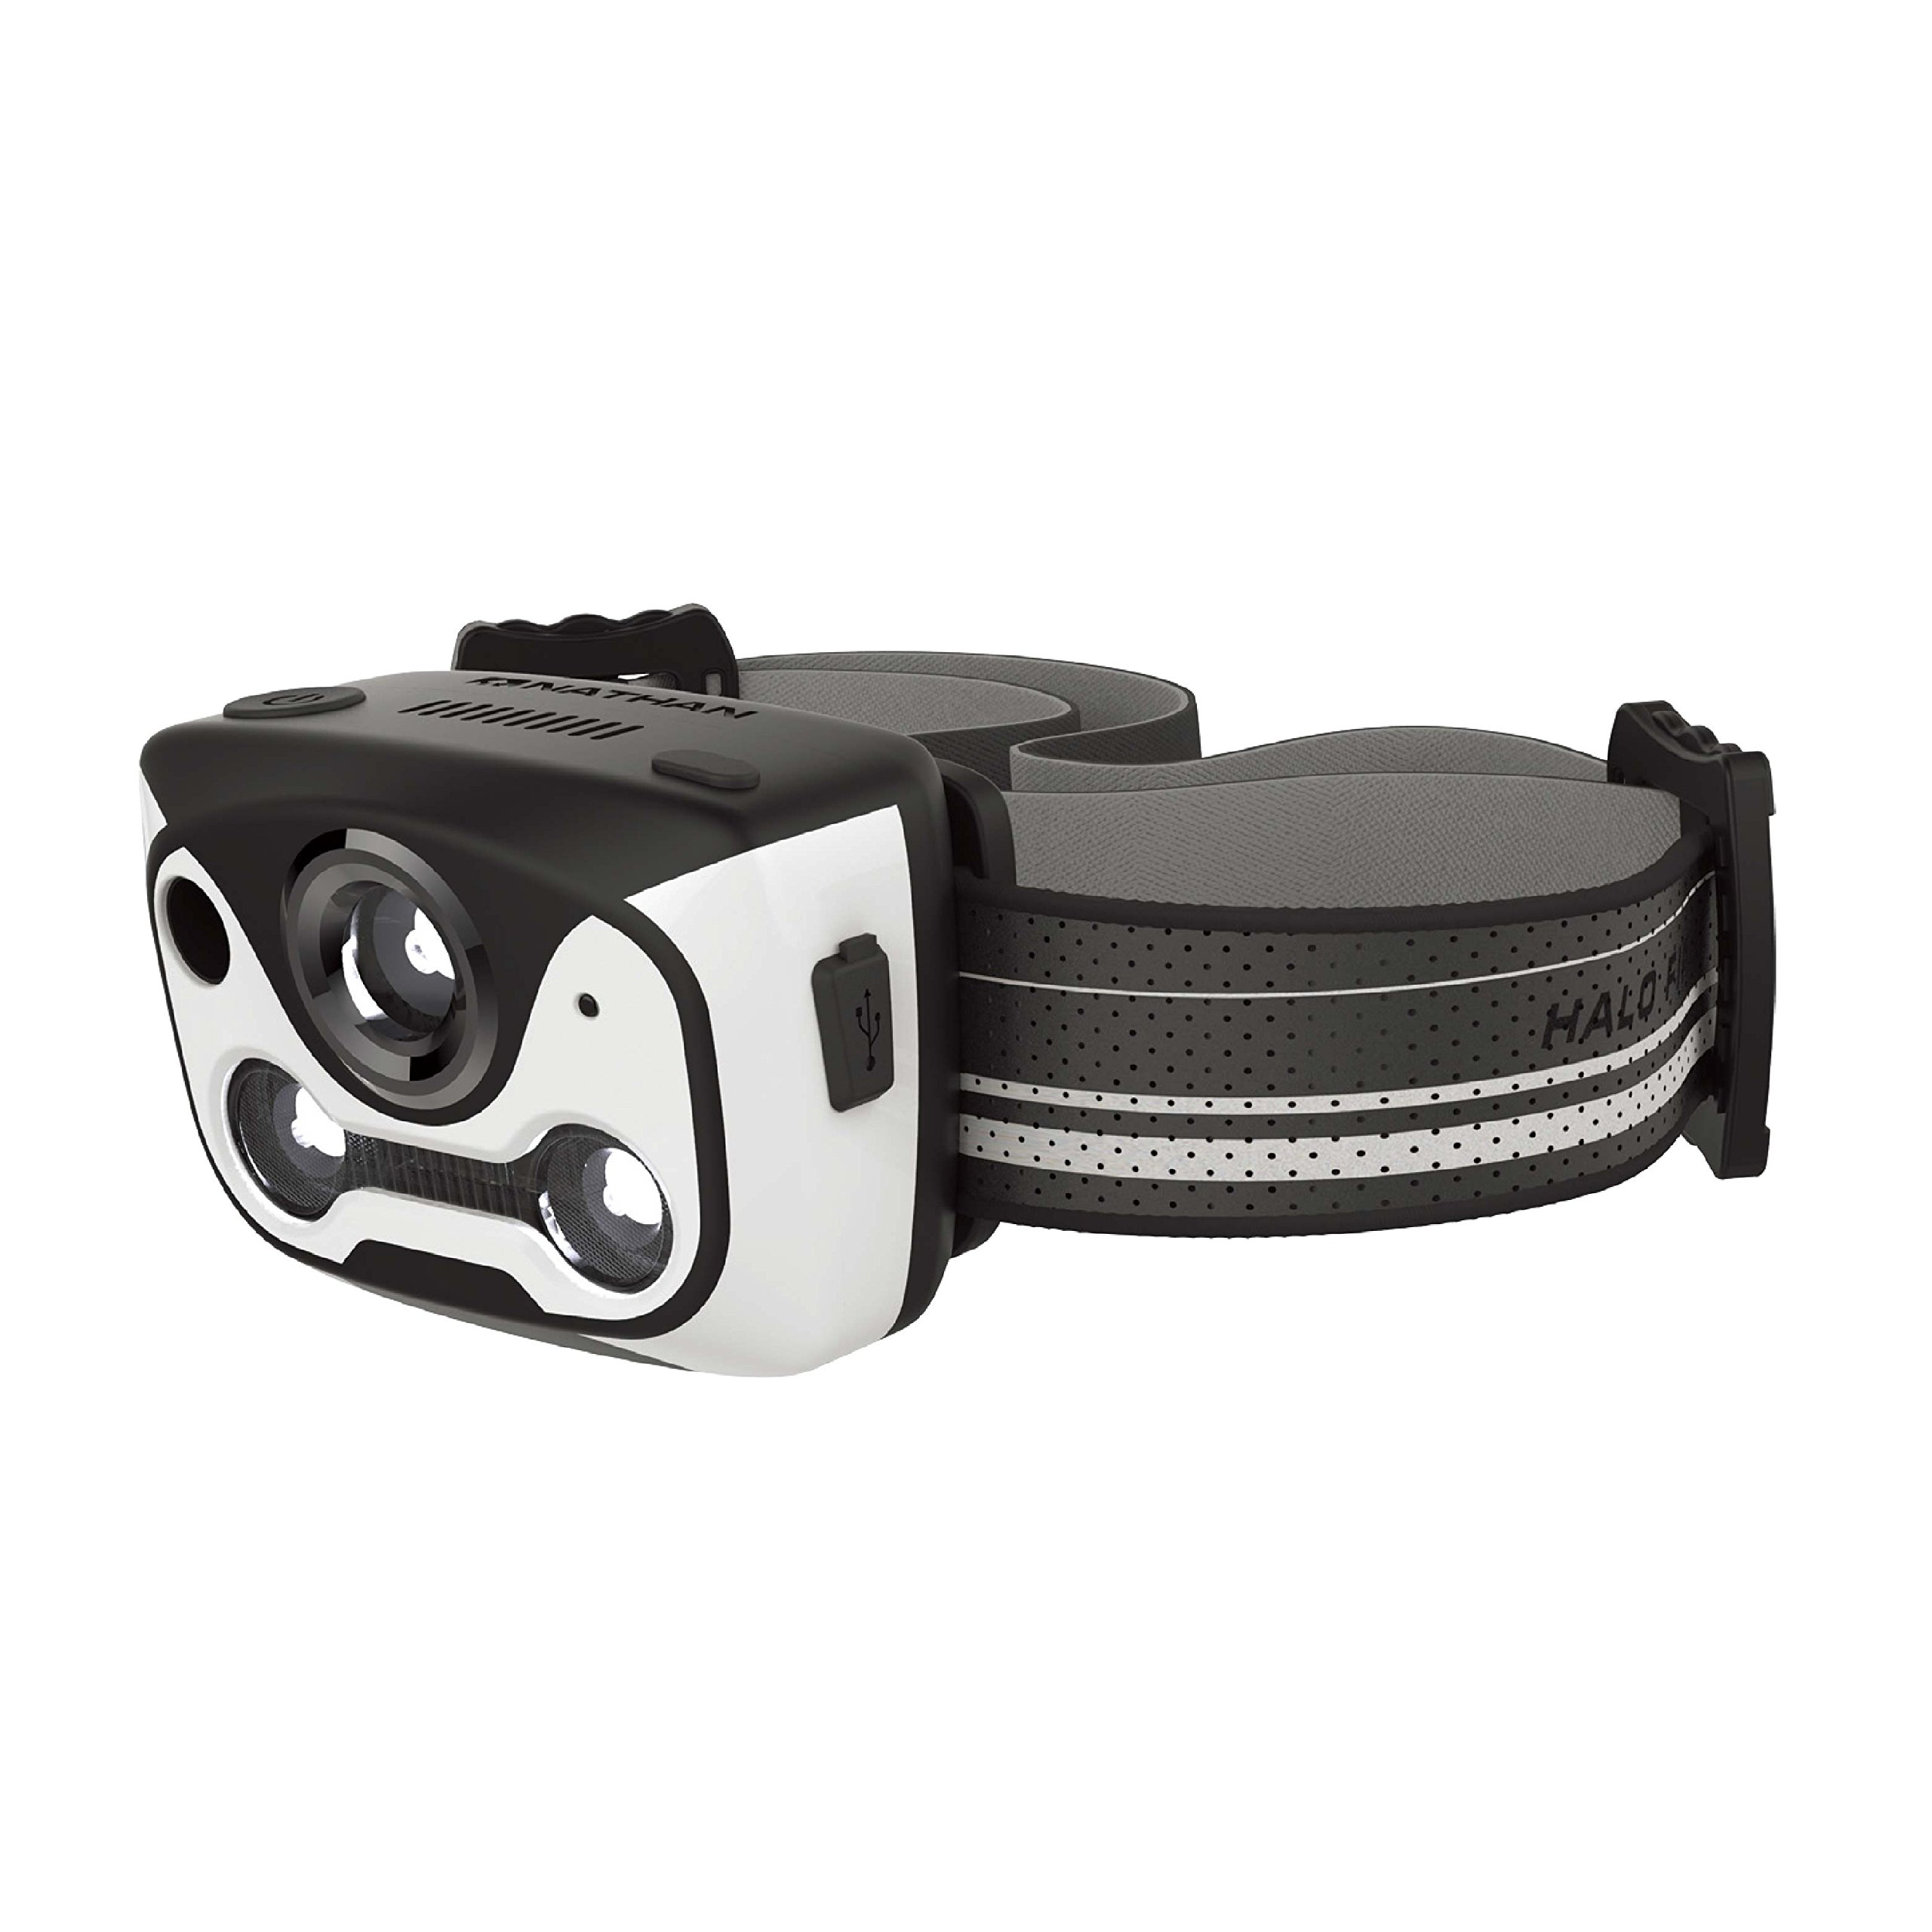 Nathan Halo Fire Headlamp, White/Black by Nathan